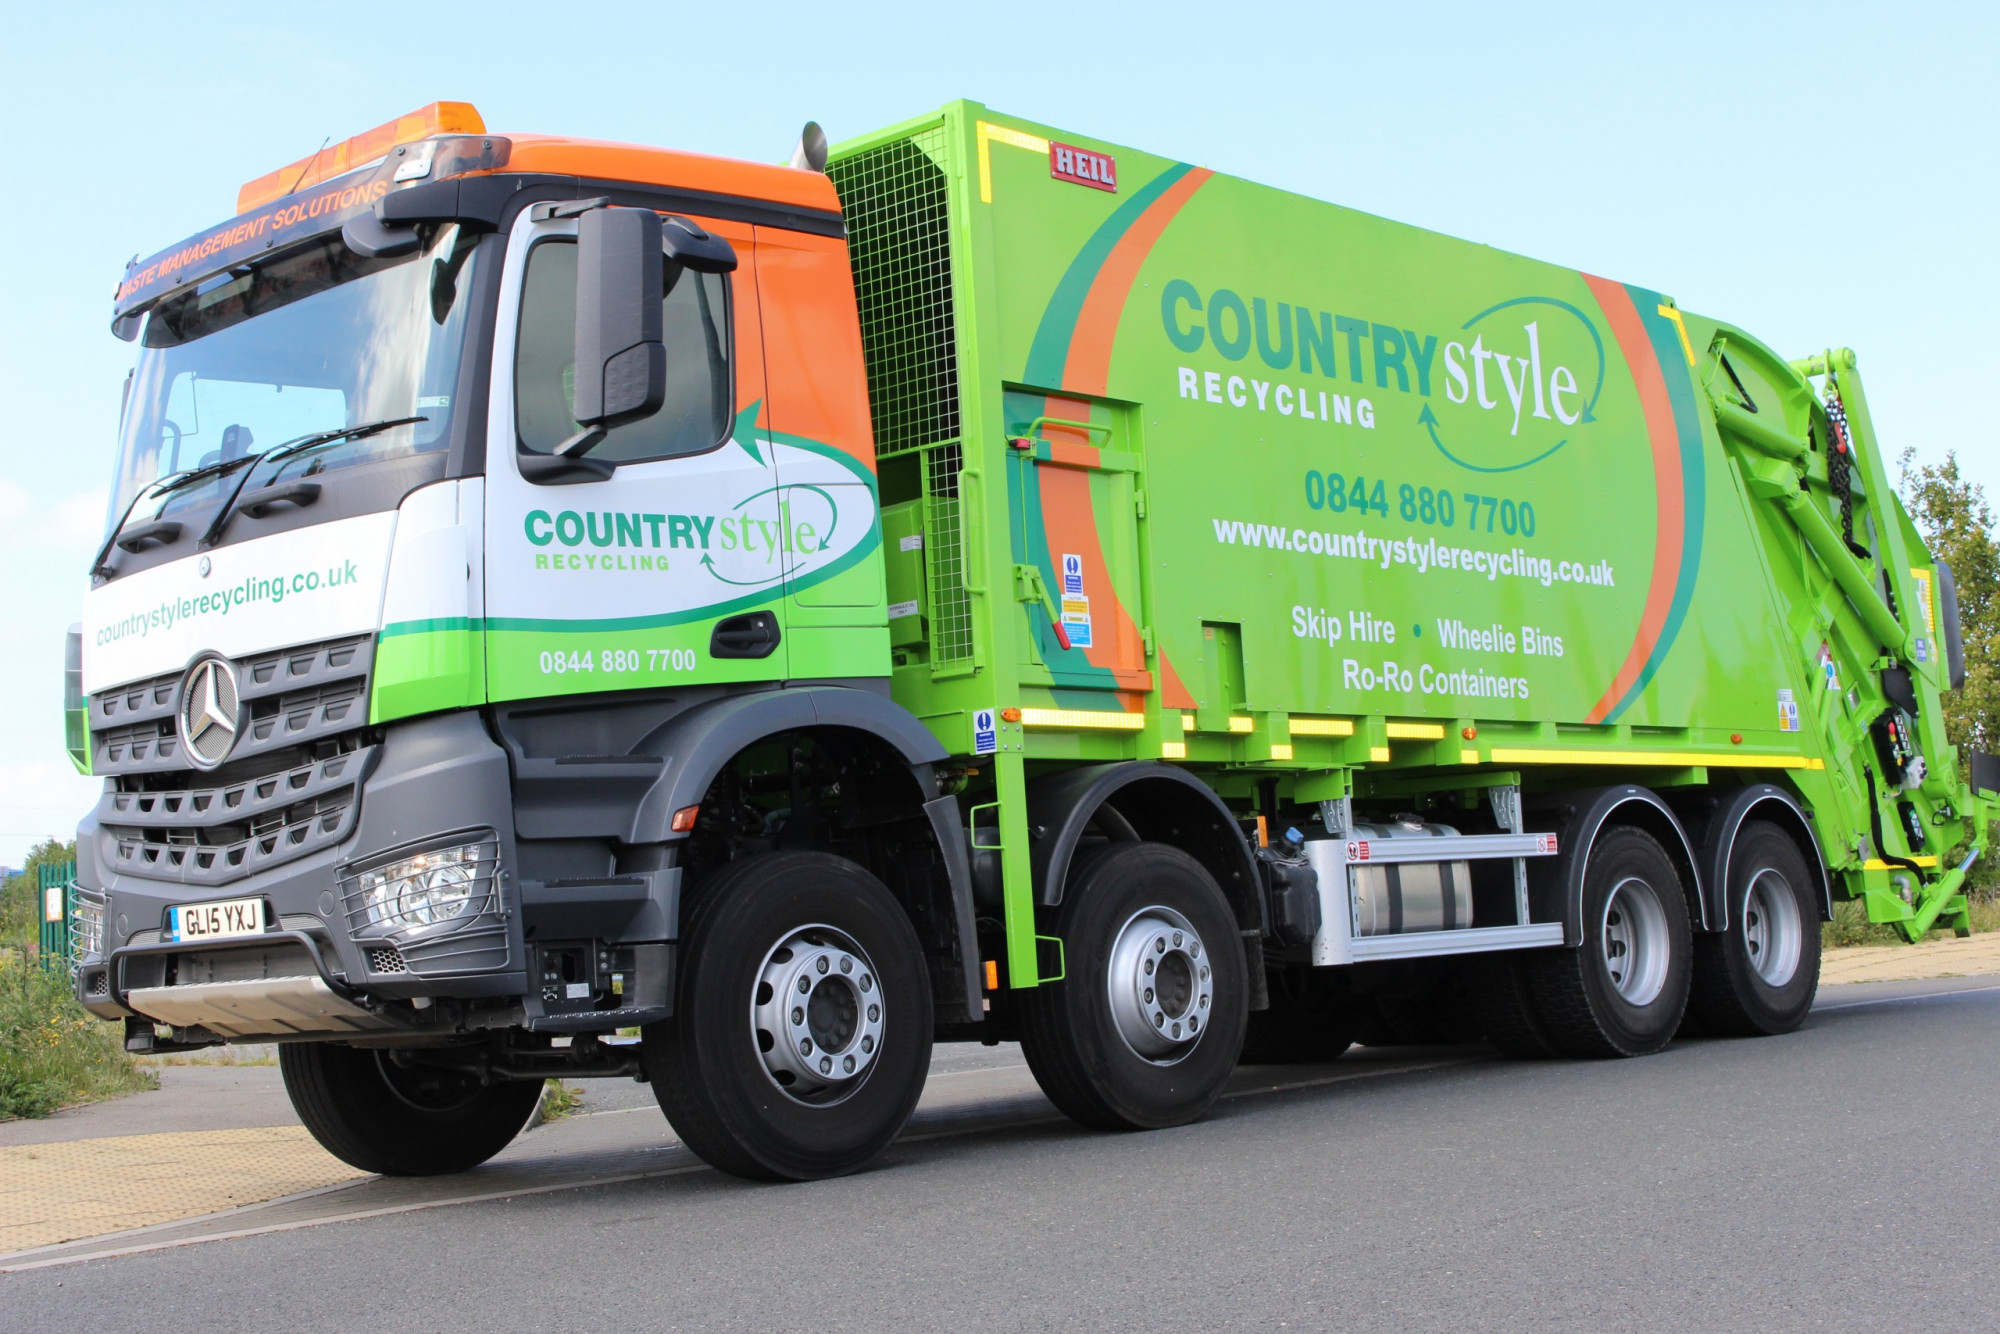 Countrystyle Recycling, Wheelie Bins - Rubbish Truck